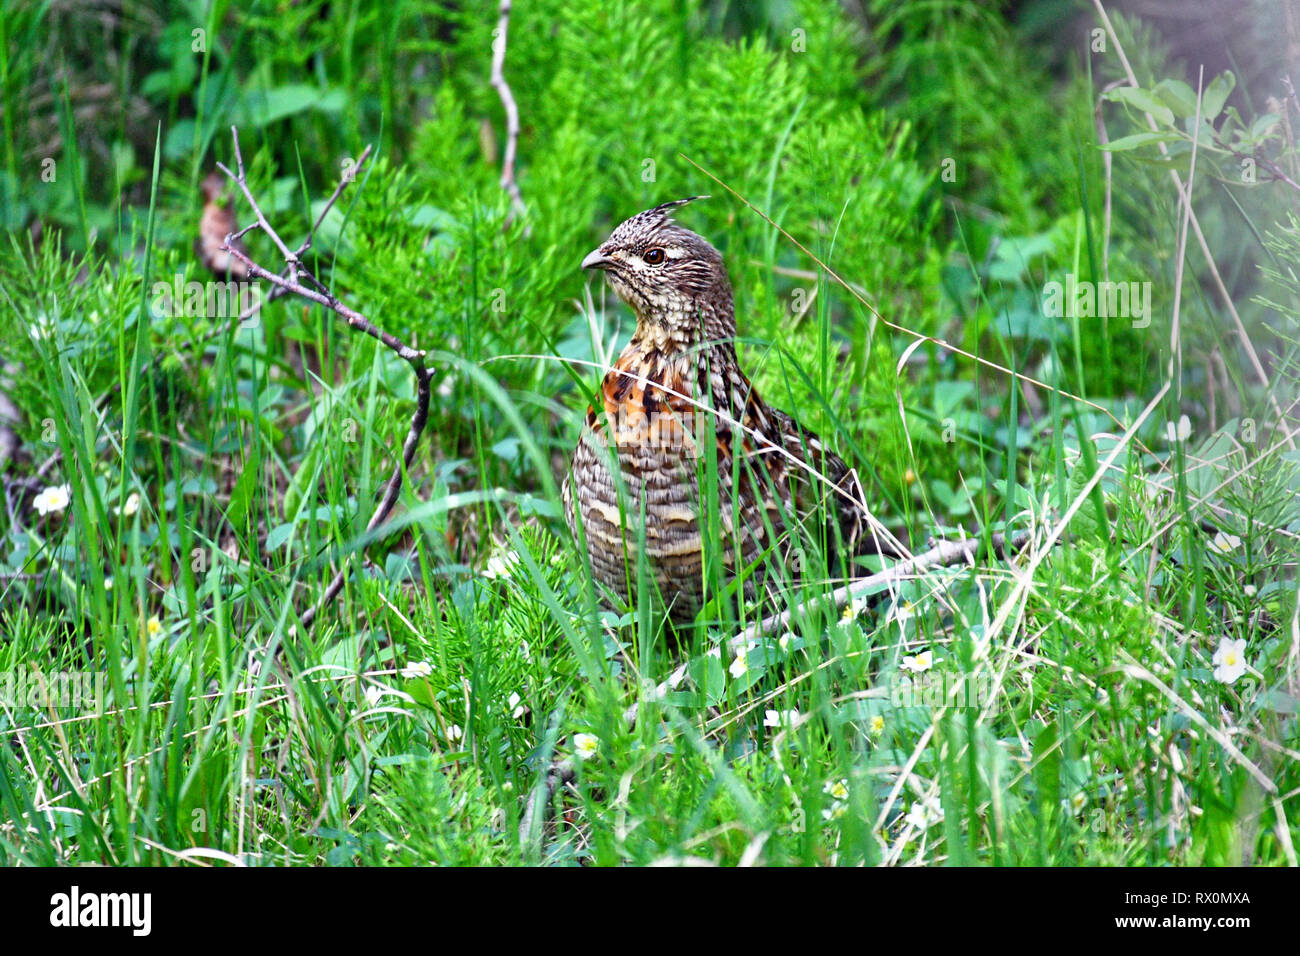 PHOTO: 40,708.08762 -- Chicken-size upland game bird, female ruffed grouse (Bonasa umbellus) standing in green grass and nearly hidden - Stock Image